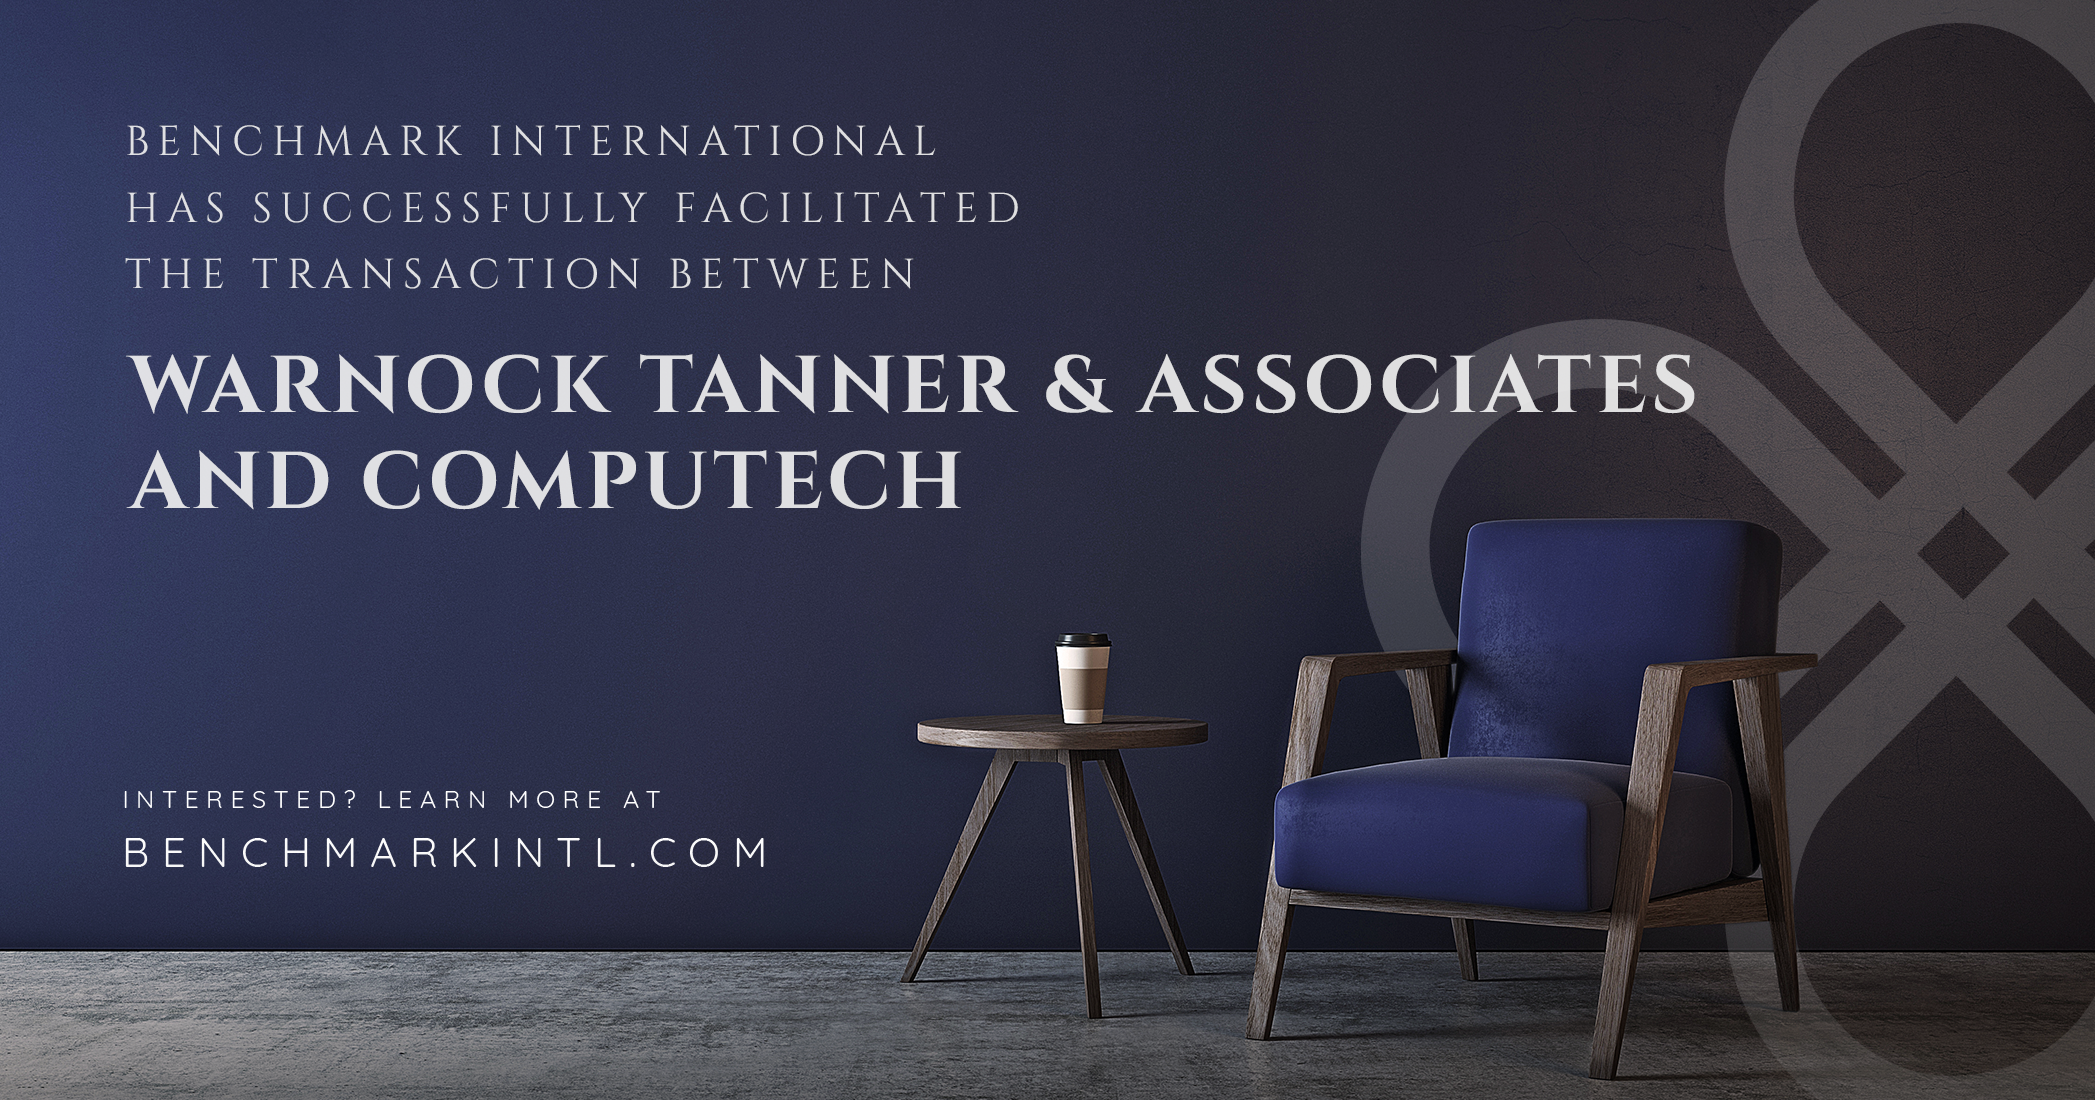 Benchmark International Successfully Facilitated the Transaction Between Warnock Tanner & Associates and Computech